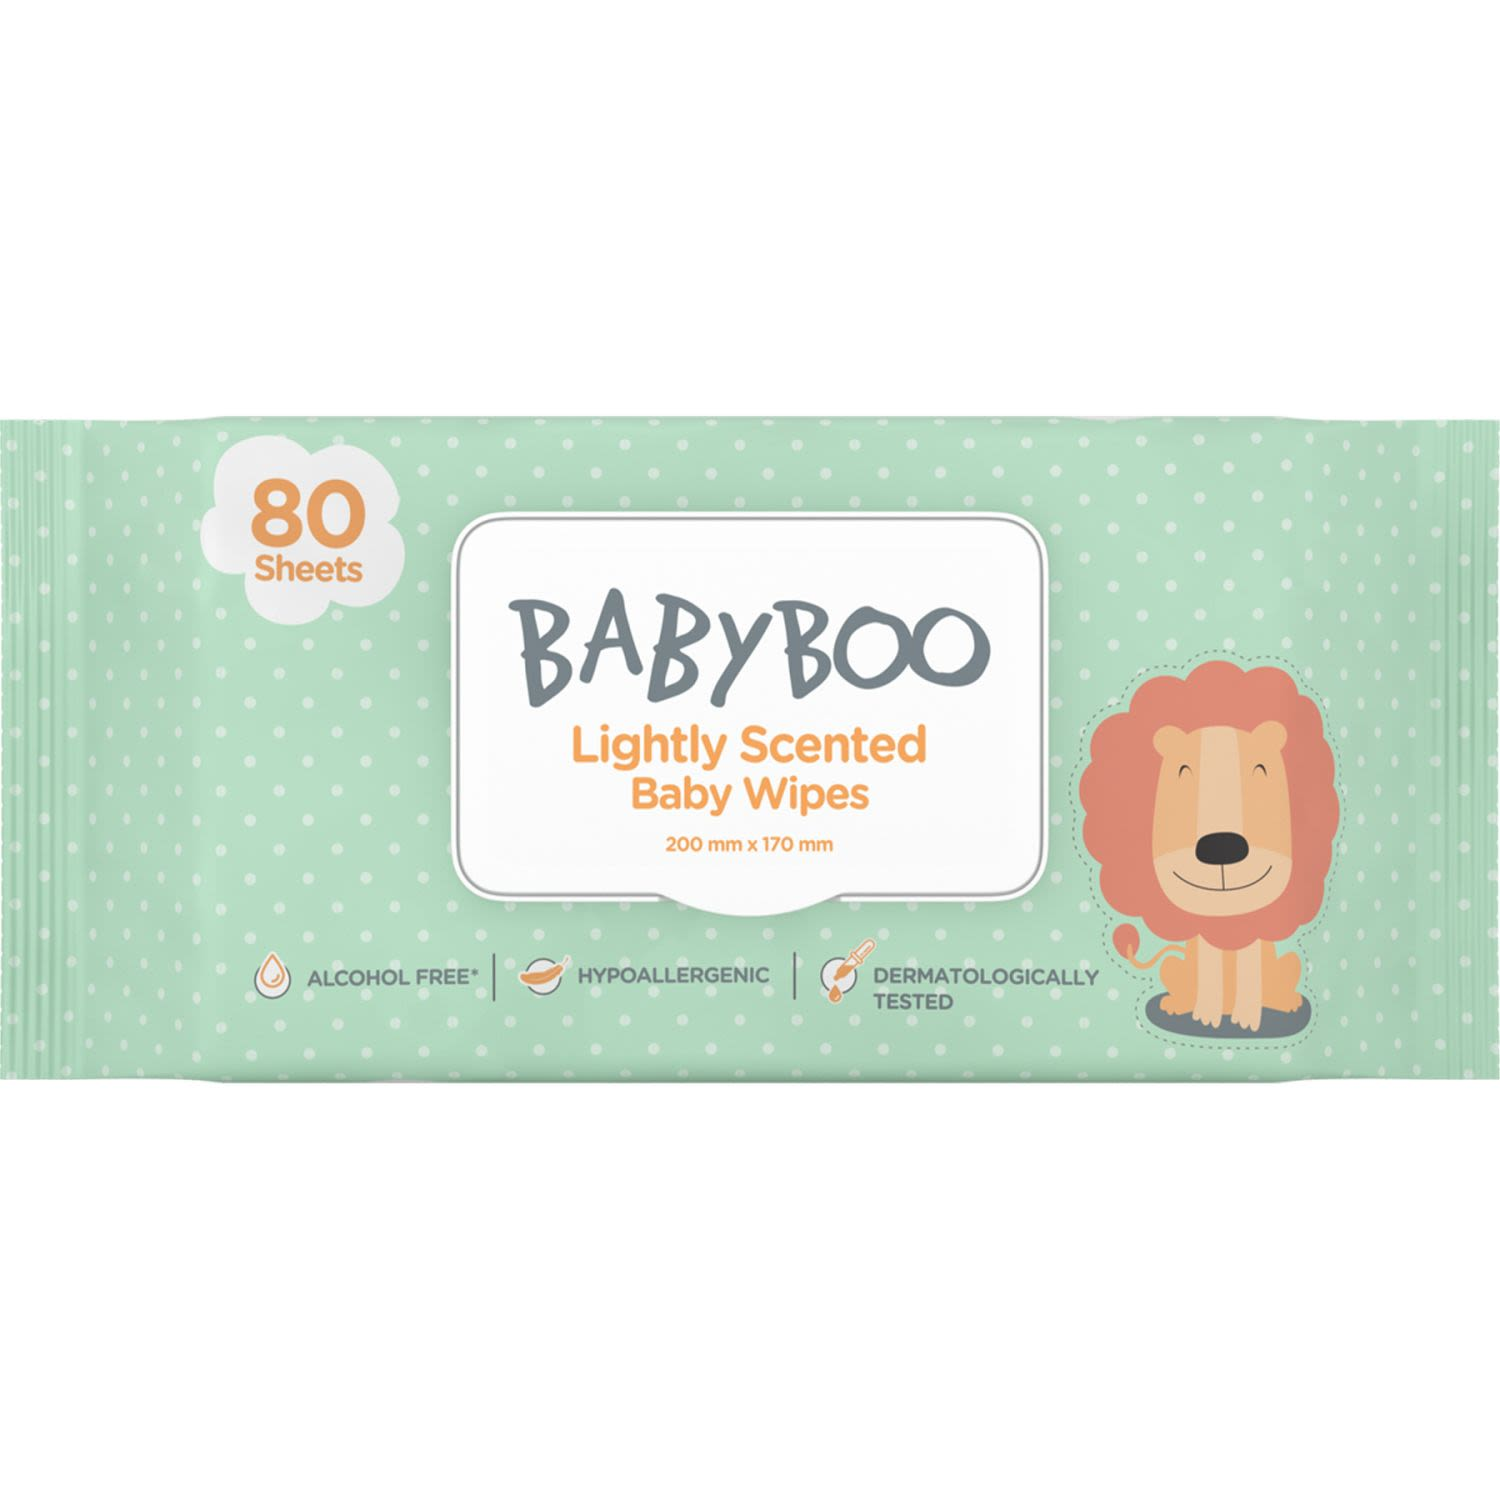 Baby Boo Baby Wipes Lightly Scented, 80 Each